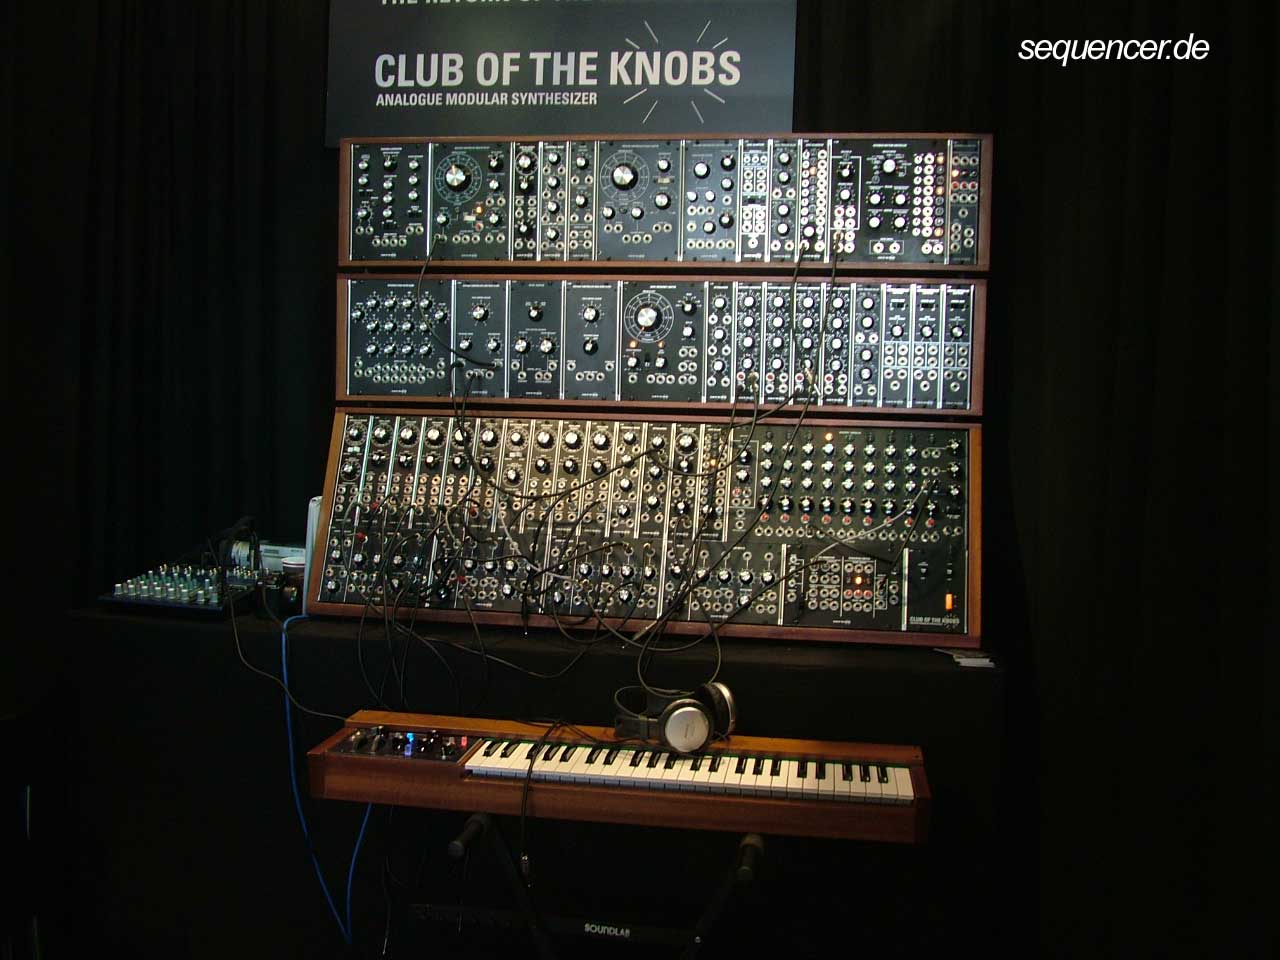 Club Of The Knobs Modular